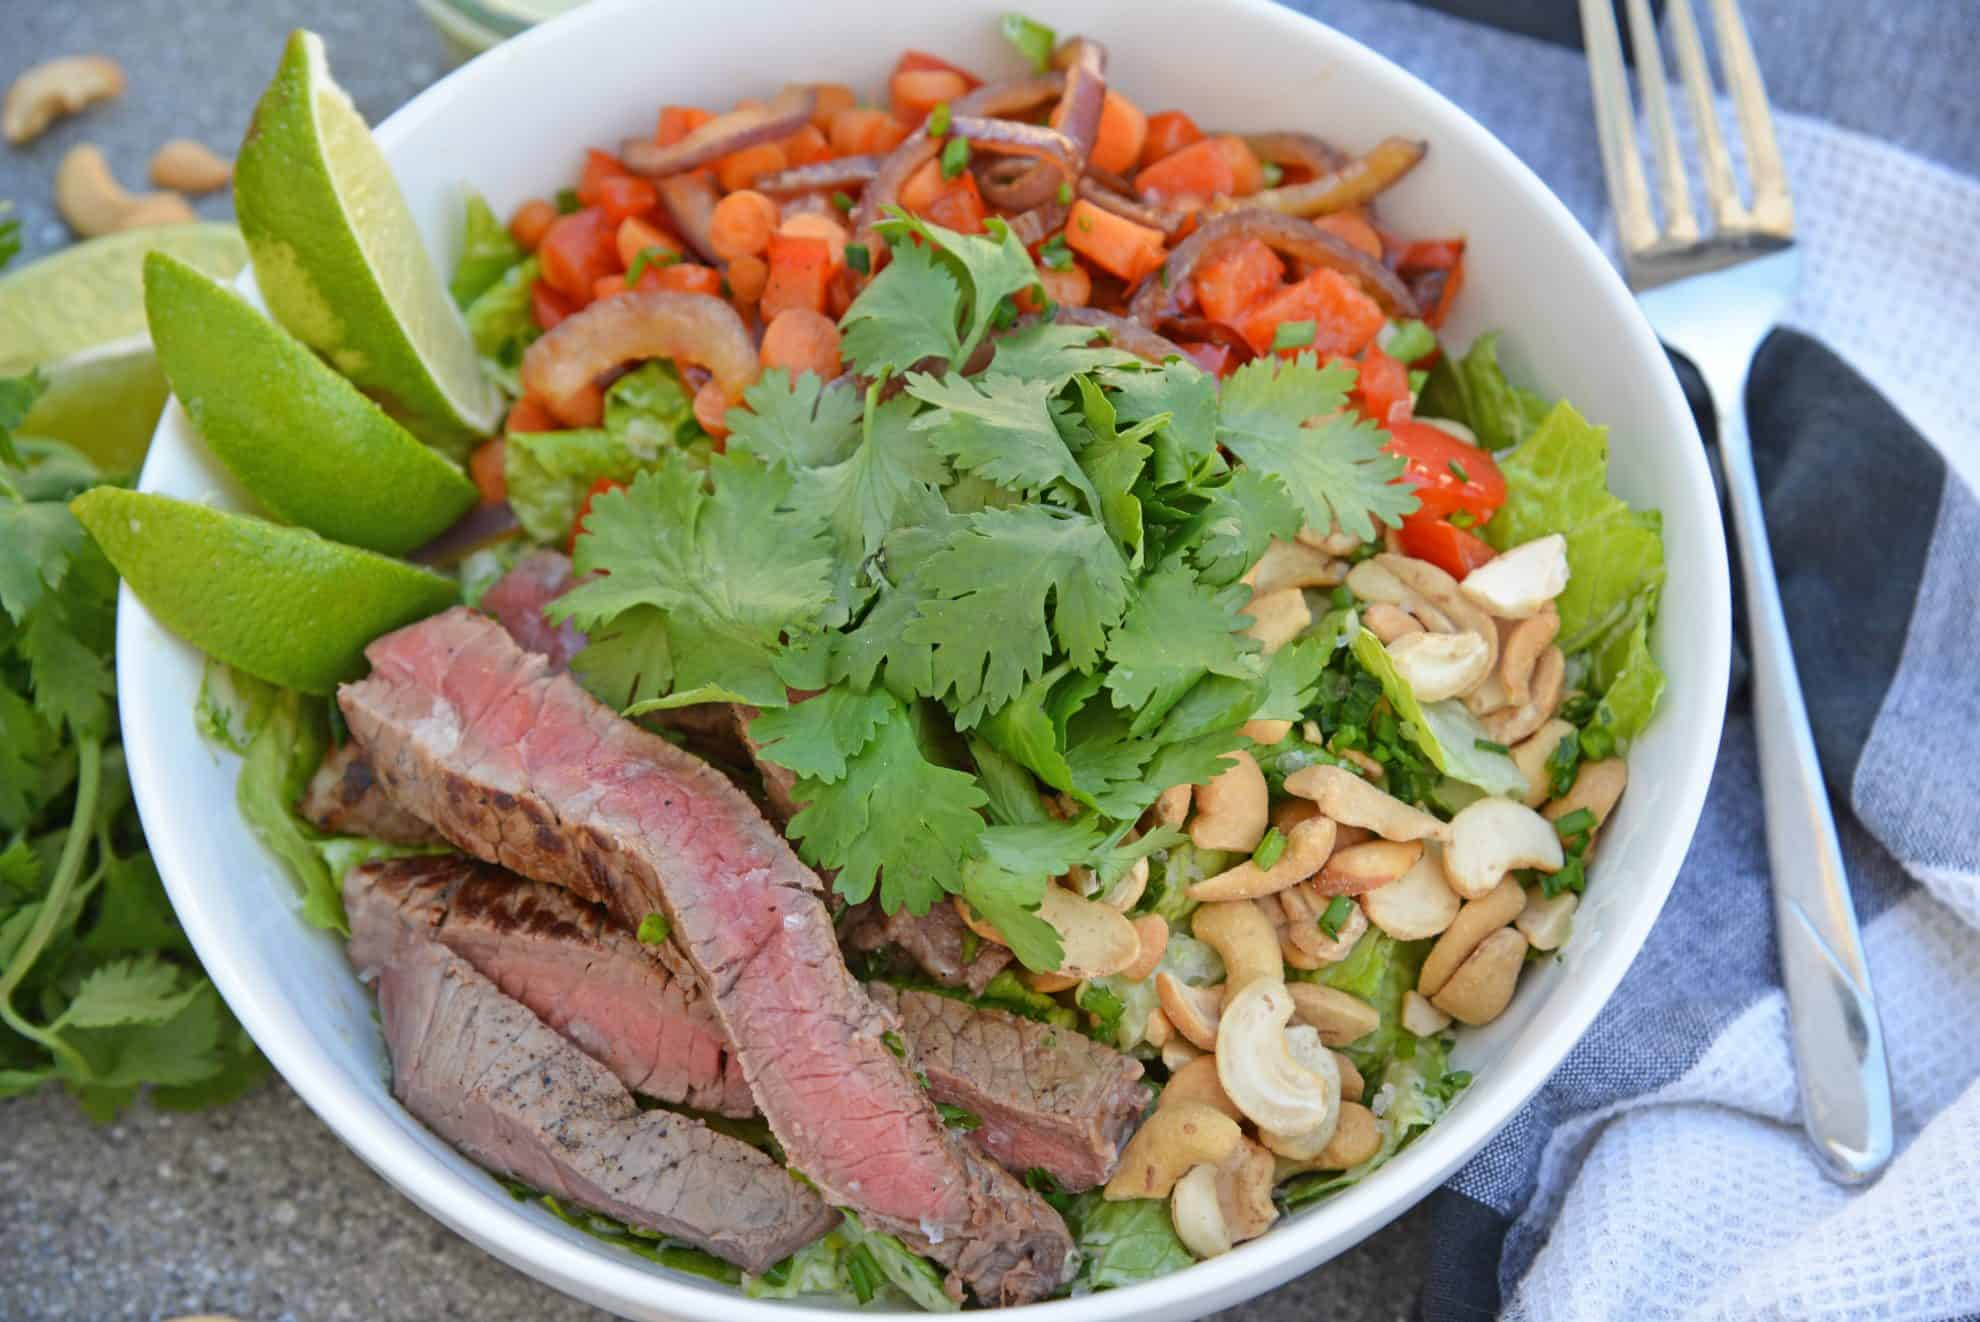 Sliced steak salad recipe